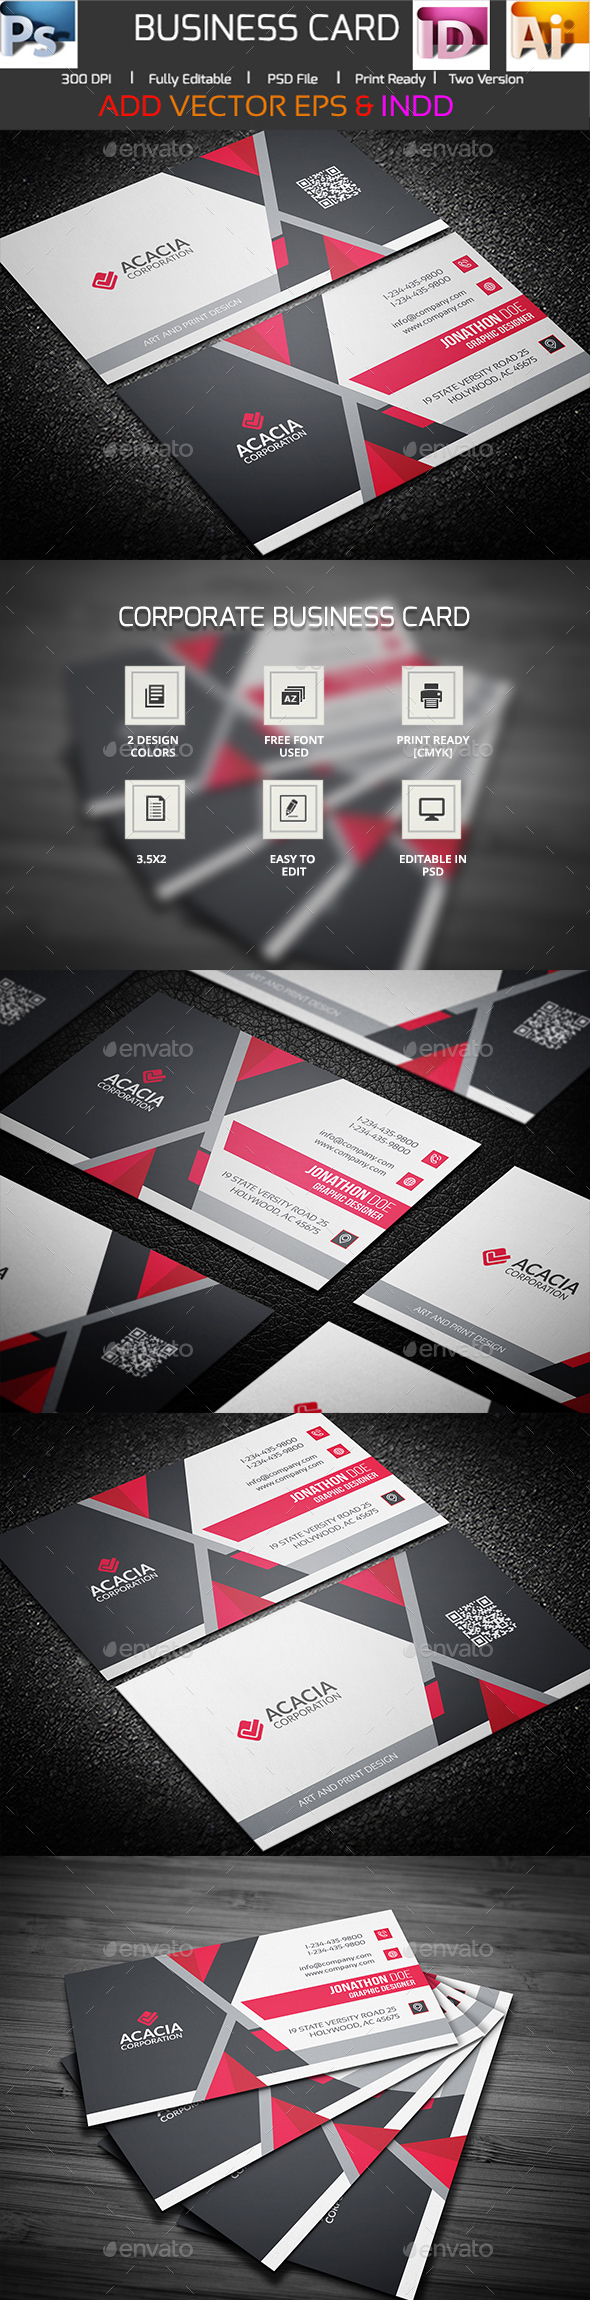 Trasia Business Card  - Corporate Business Cards